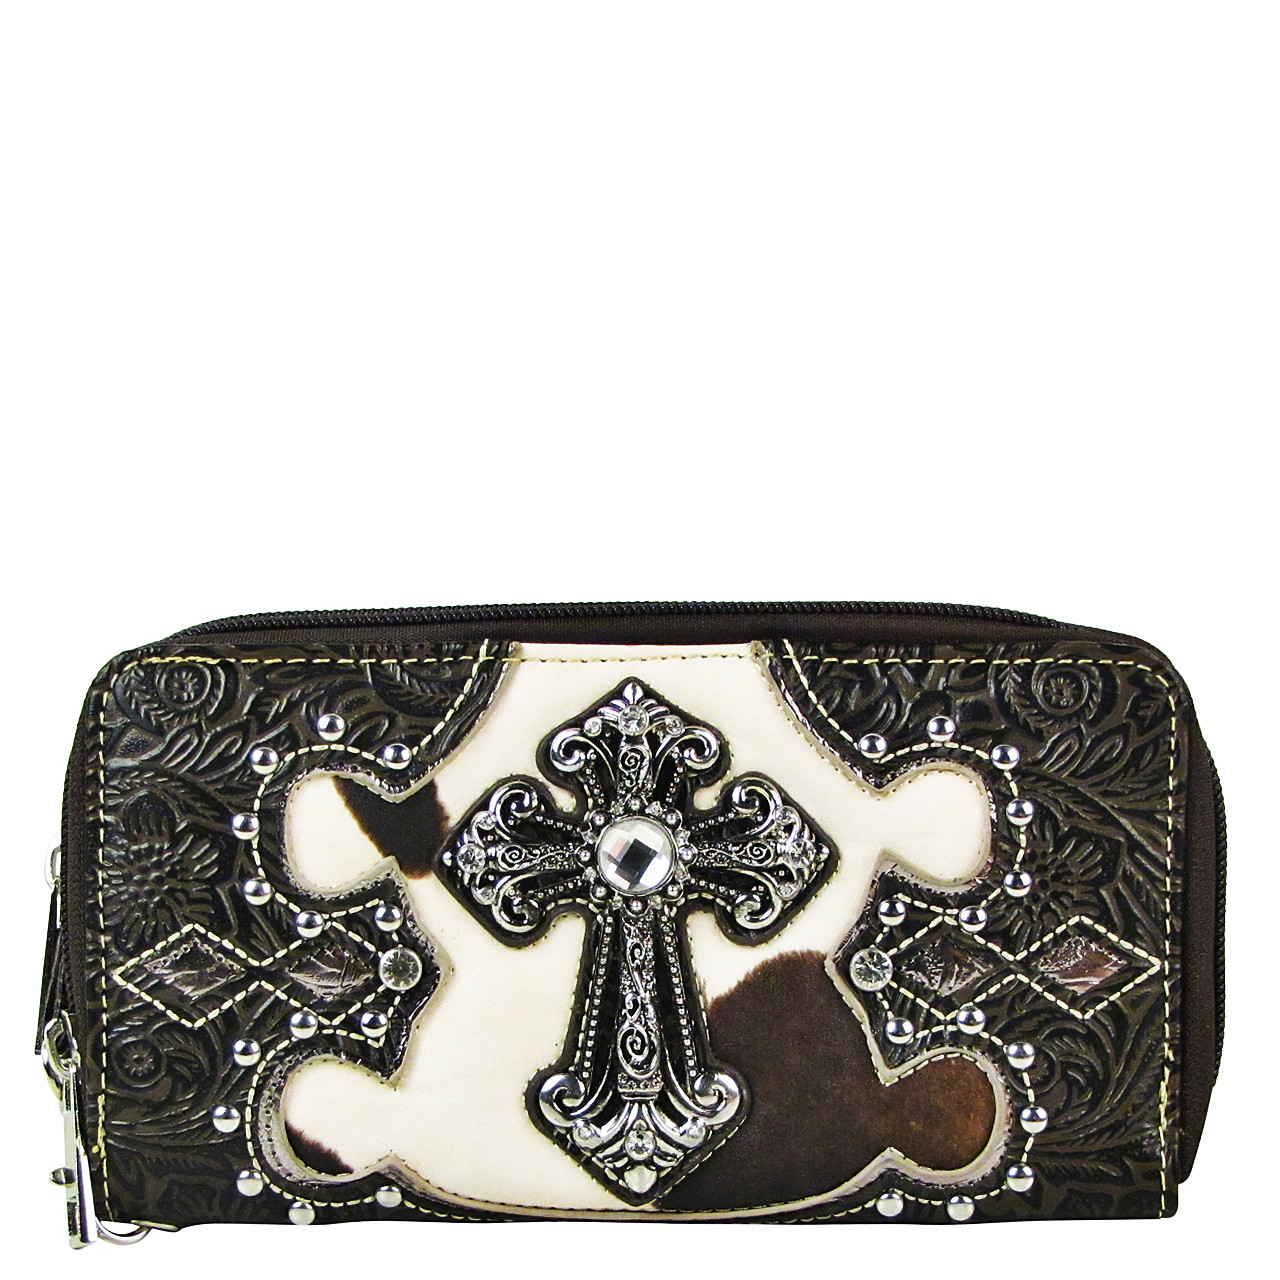 BLACK COW RHINESTONE CROSS LOOK ZIPPER WALLET CB3-0406BLK